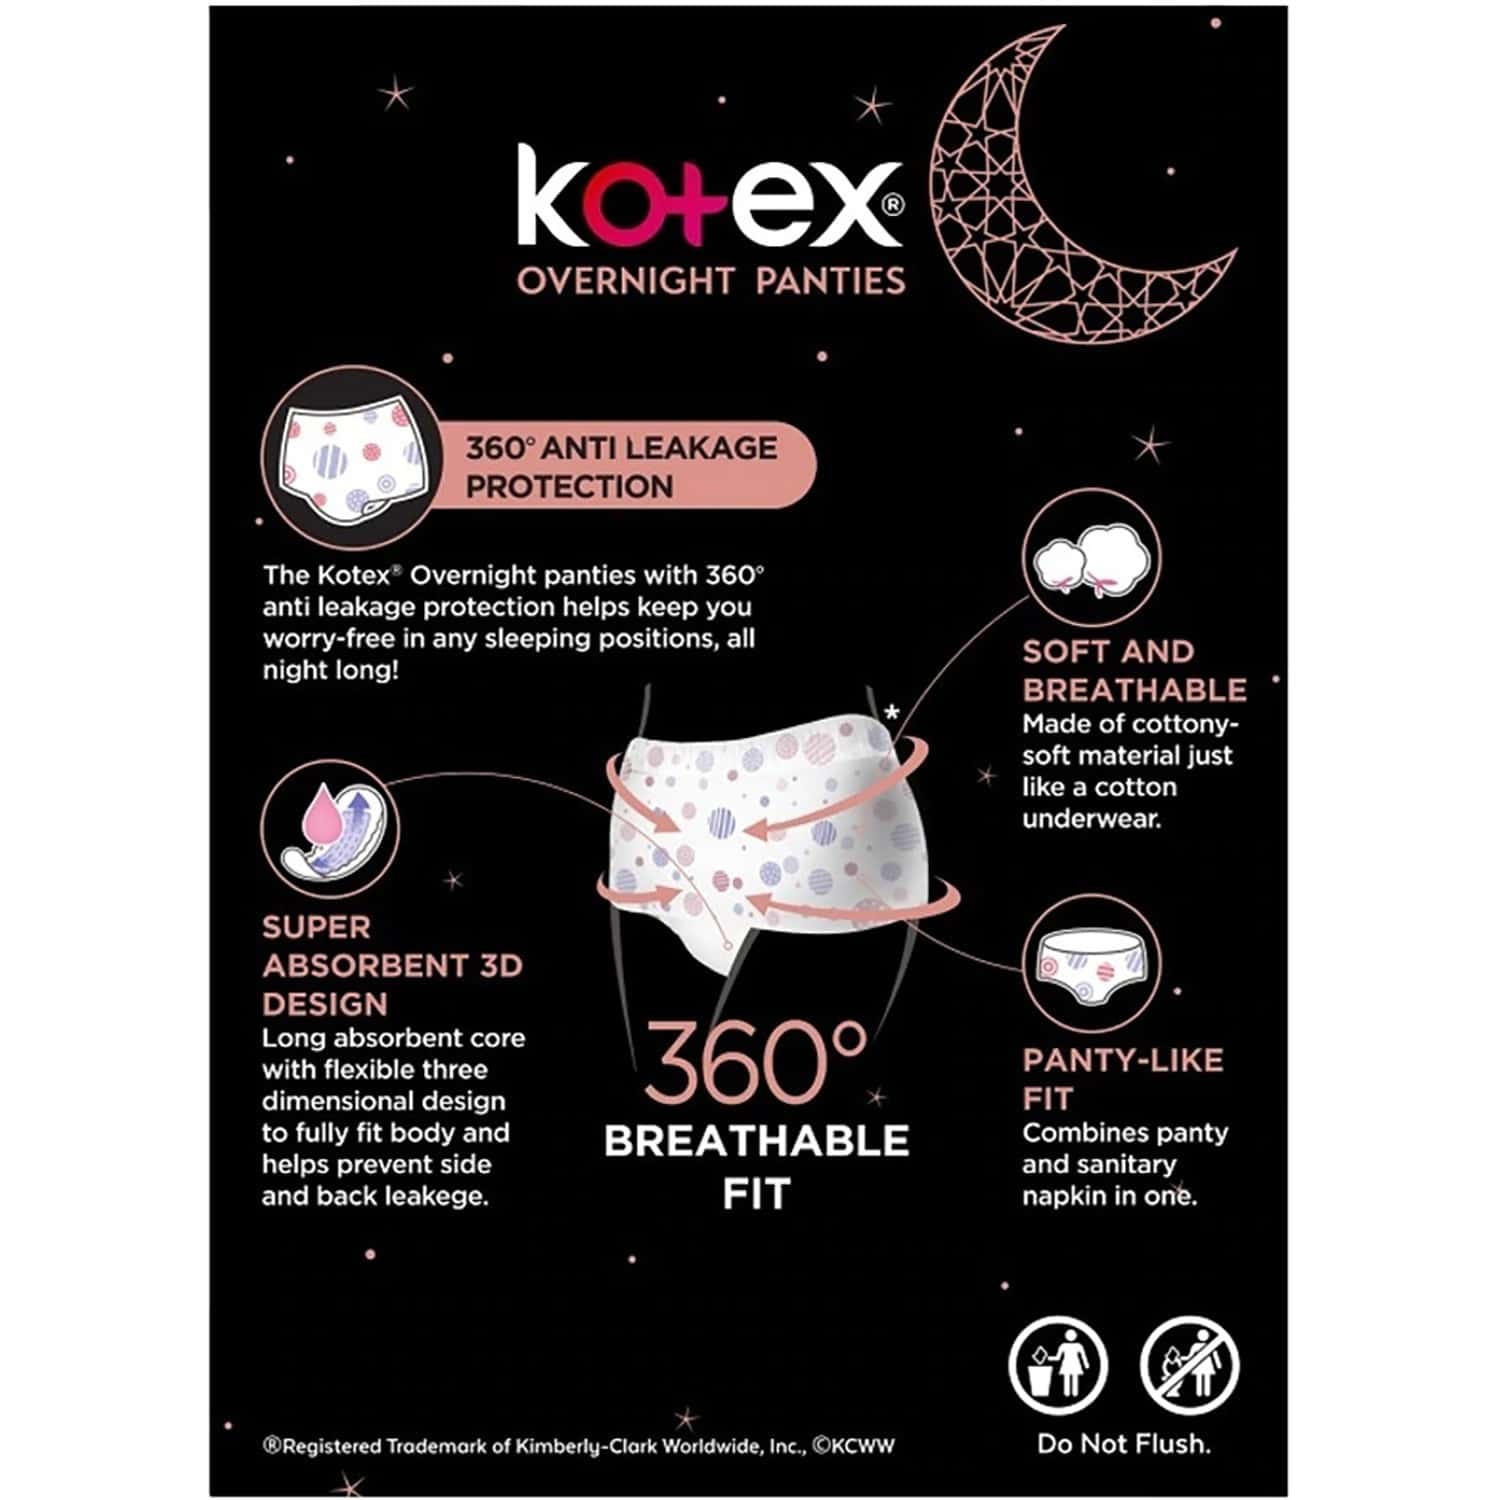 Kotex Overnight Panties -periodwear For Sanitary Protection - S/m (4 Count)